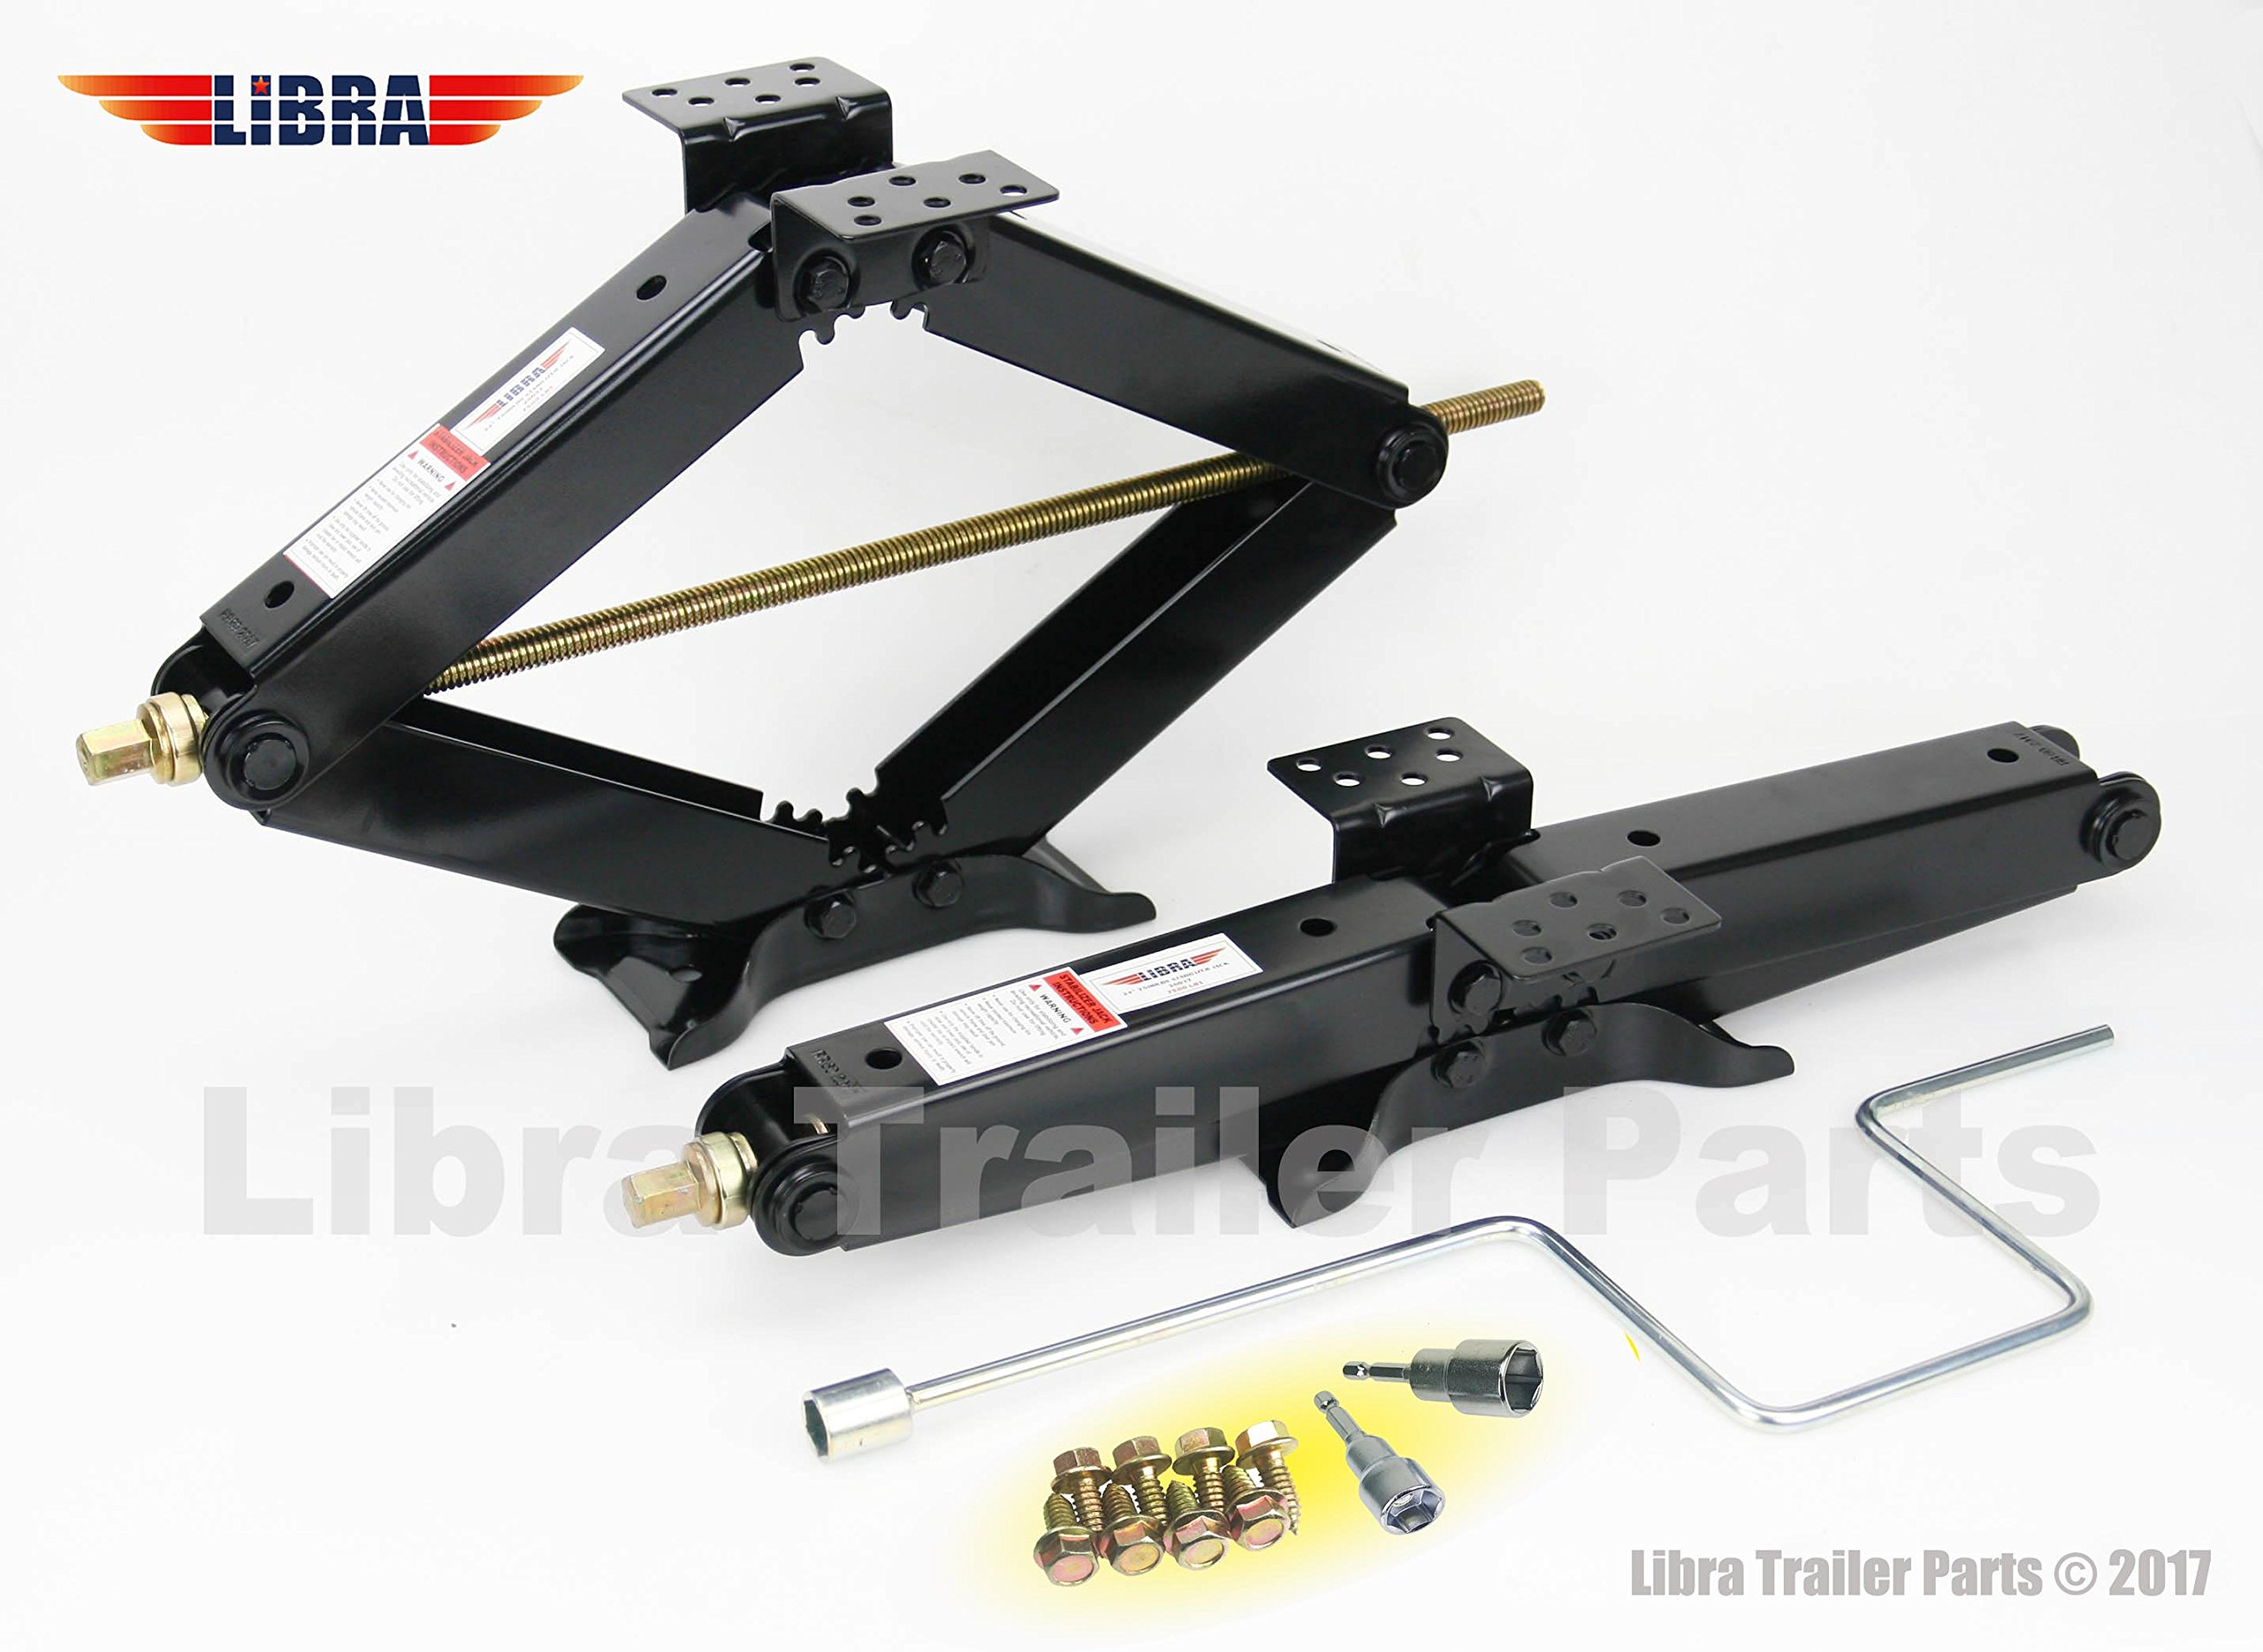 LIBRA Set of 2 True 7500 lb Heavy Duty 24'' RV Trailer Stabilizer Leveling Scissor Jacks w/Handle & Dual Power Drill Sockets & Hardware -Model# 26037 by LIBRA